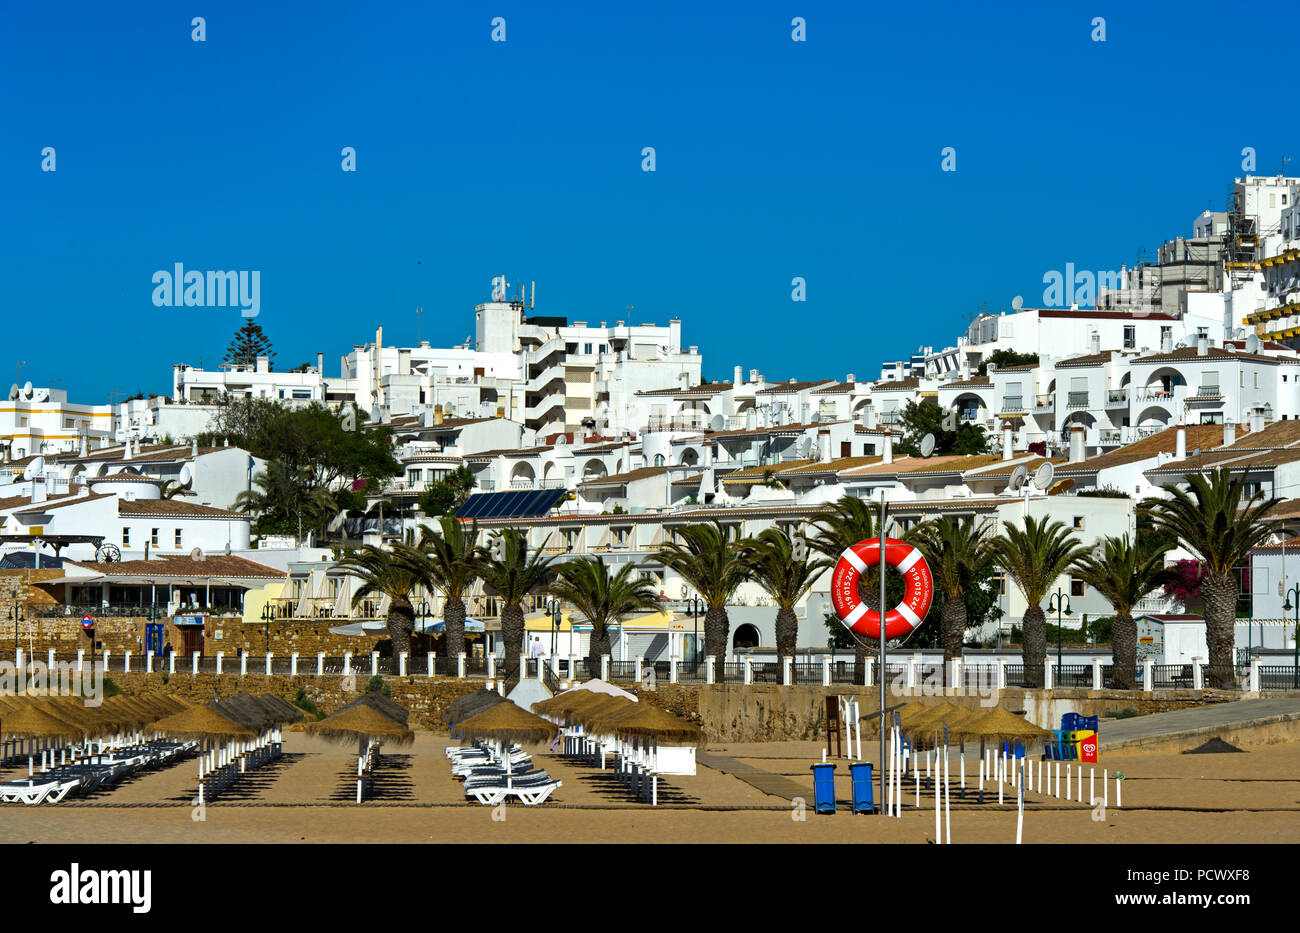 Holiday-villa complexes behind the beach, Praia da Luz, Luz, Algarve, Portugal - Stock Image